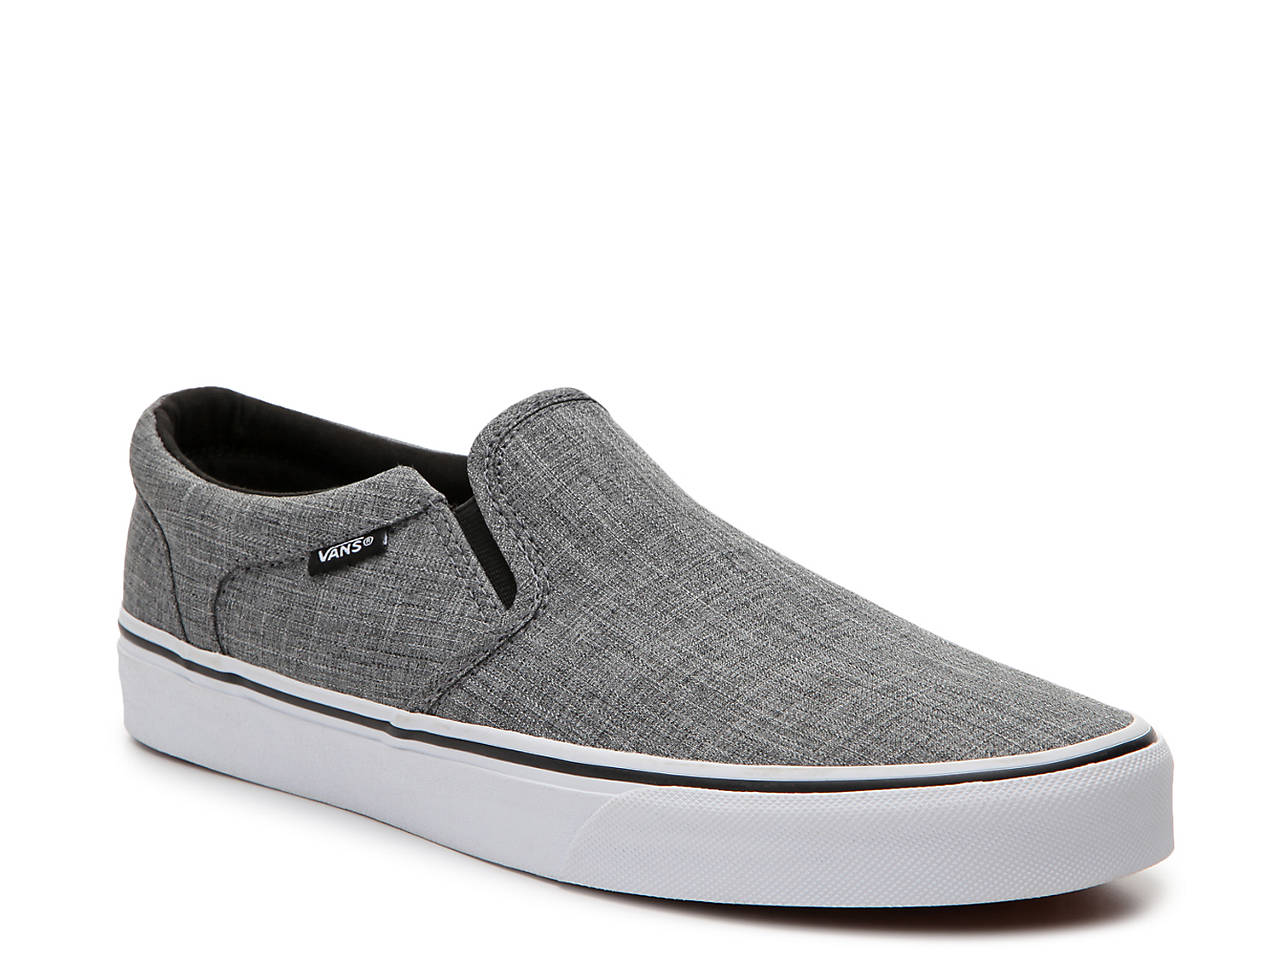 15db83d819 Asher Slip-On Sneaker - Men's